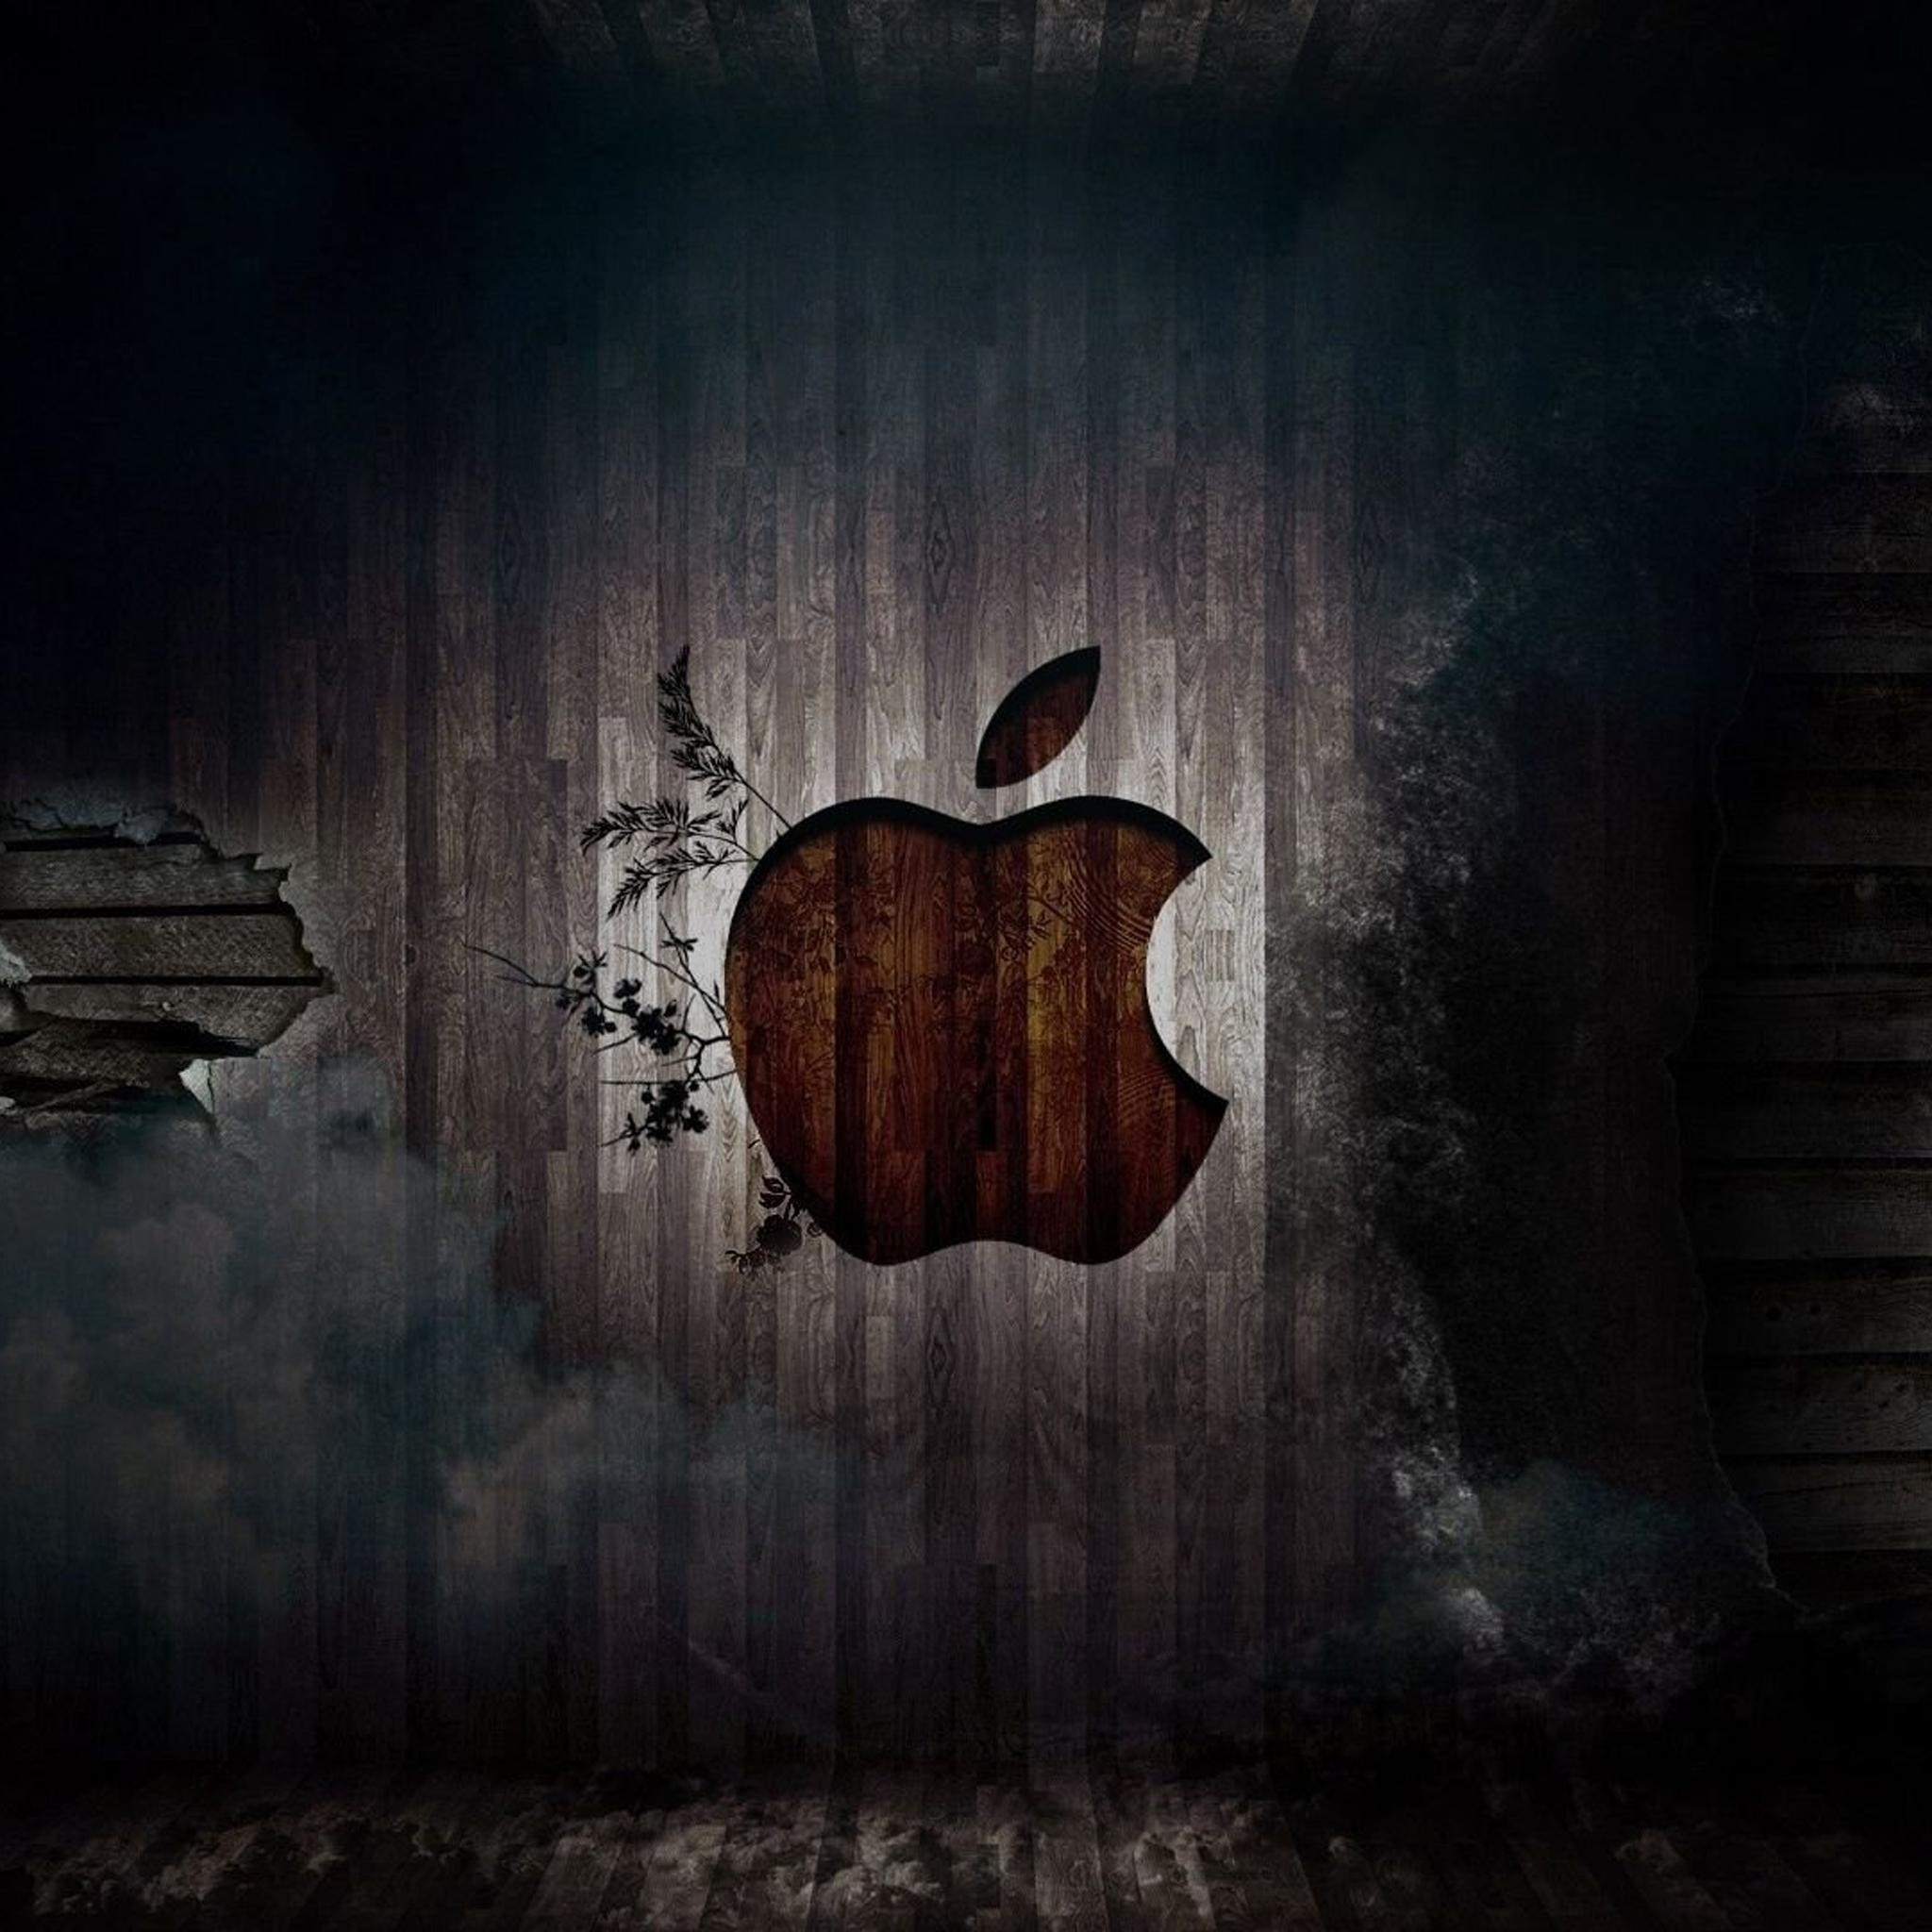 2048x2048 IPad Retina HD Wallpaper Apple In Wood